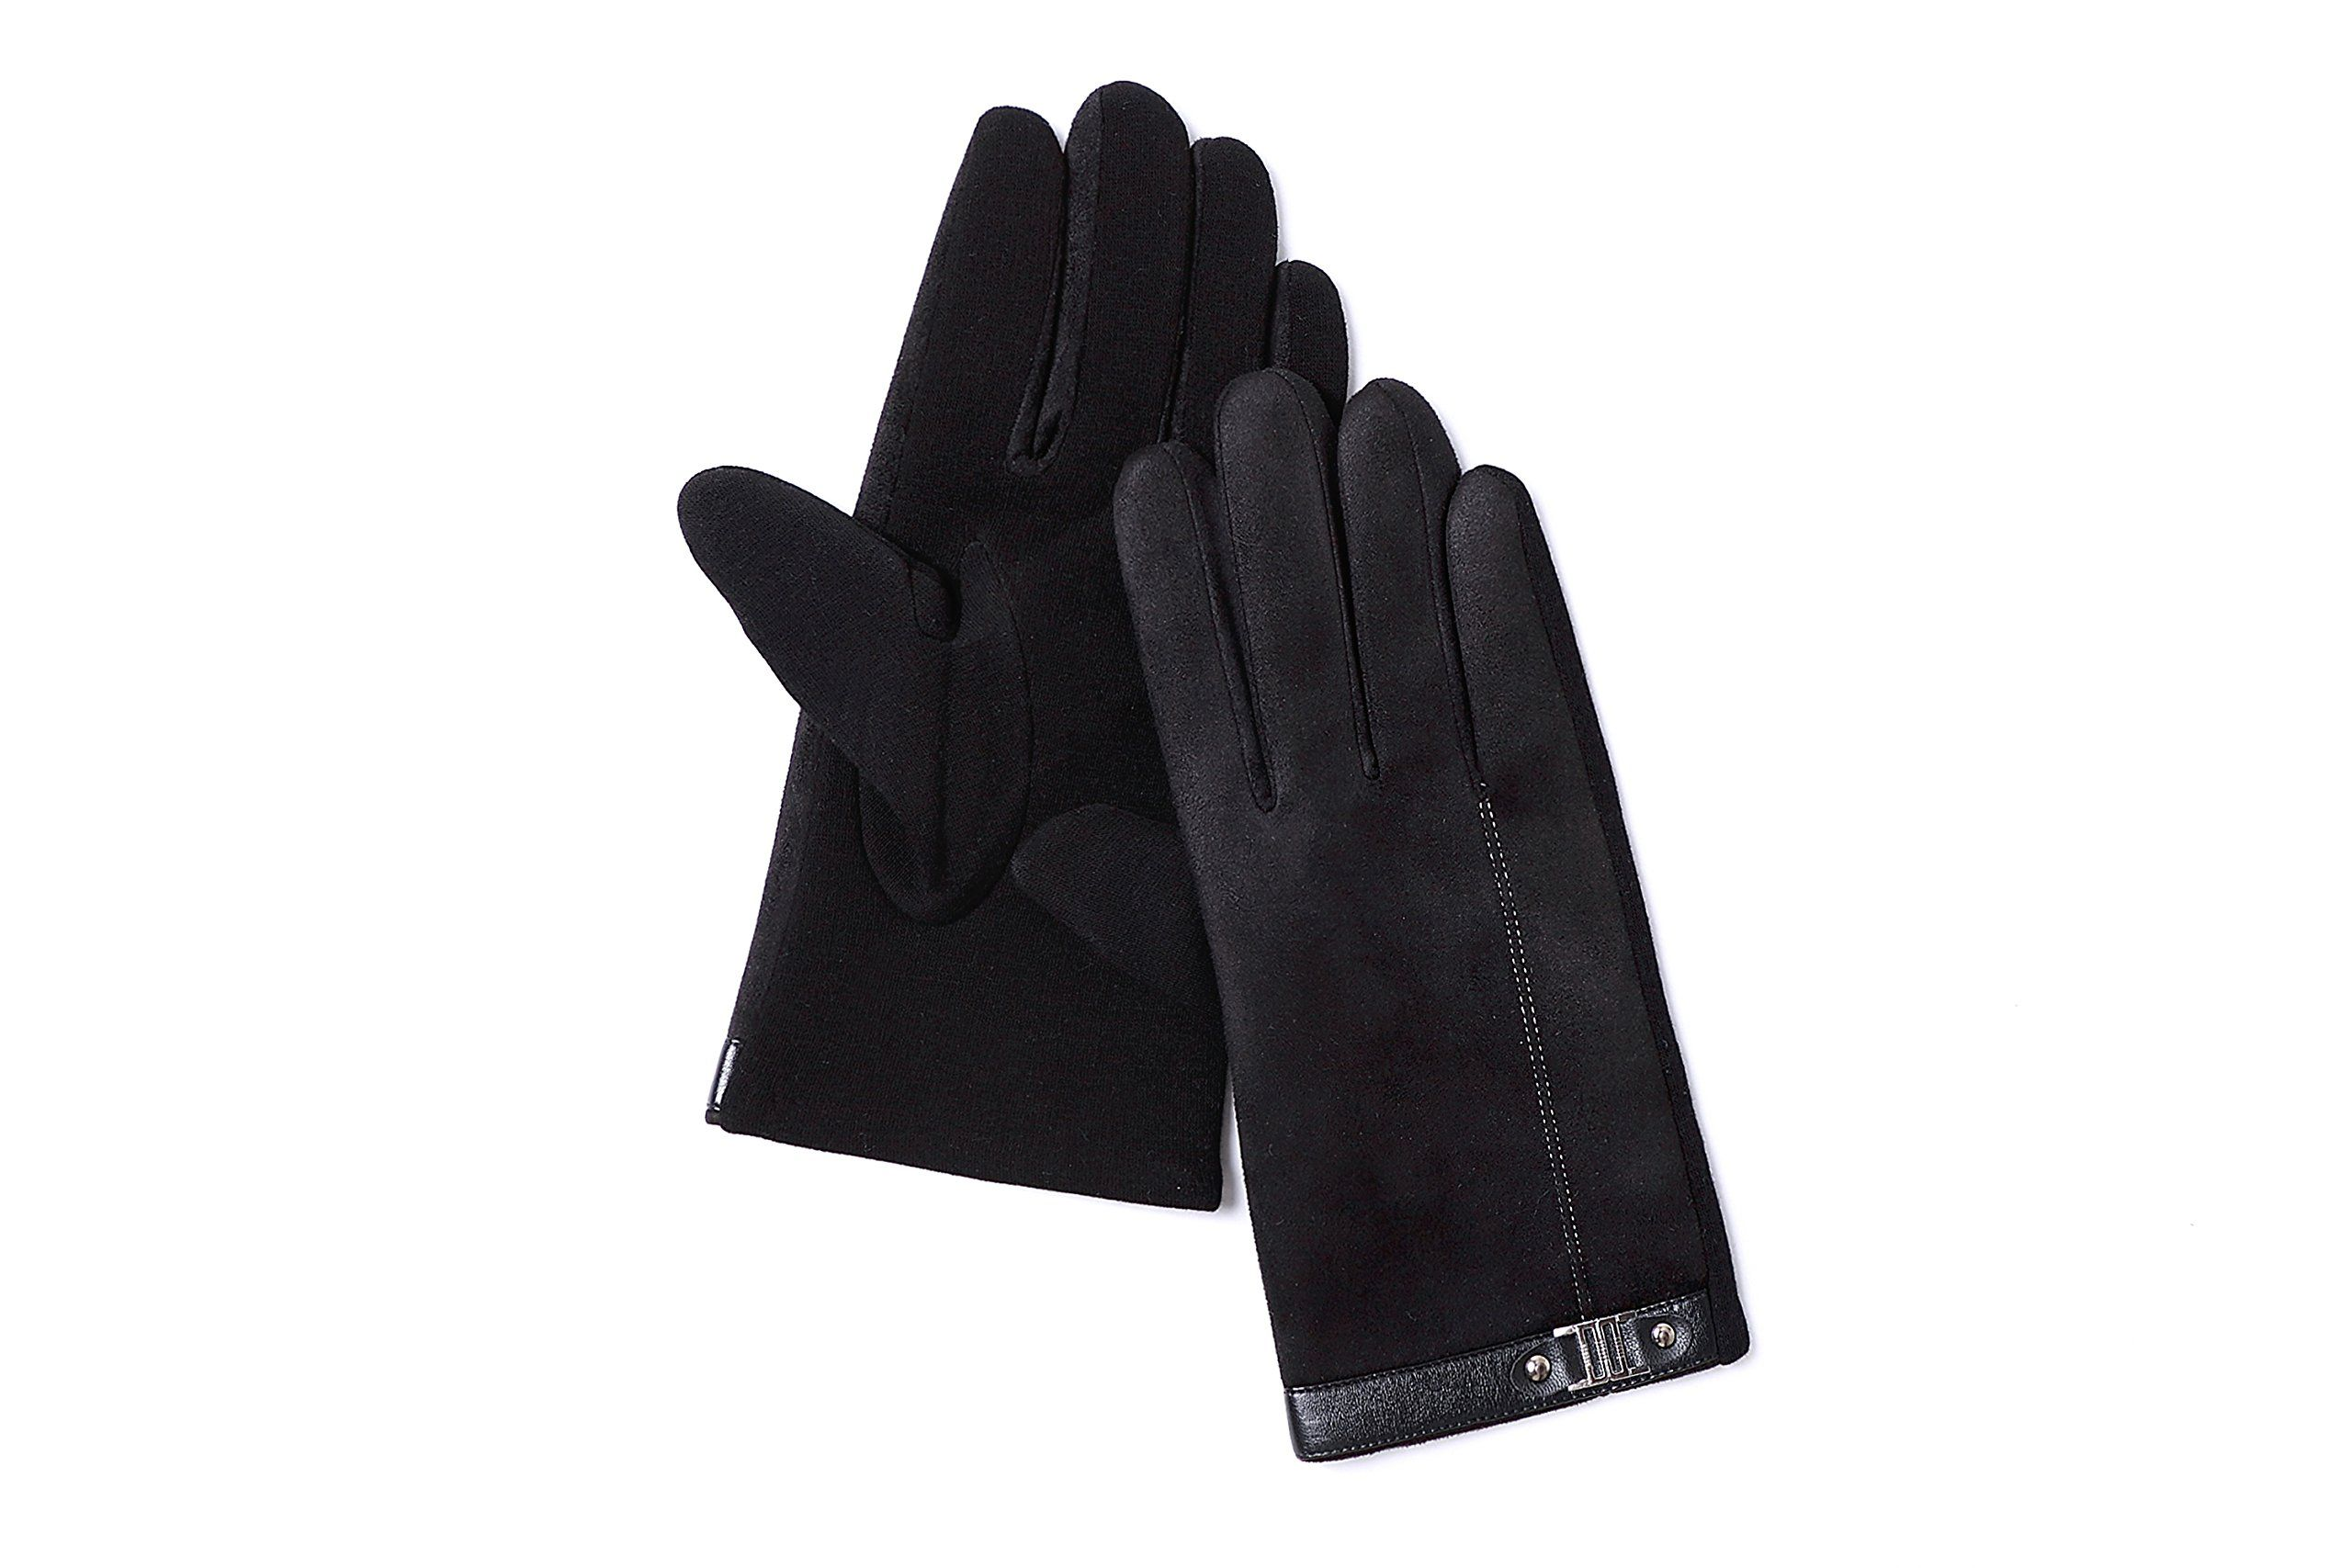 c6582ddc1 YISEVEN Mens Suede Chamois Leather Gloves Touchscreen Flat Design Plain  Lined Luxury Soft Hand Warm Fur Heated Lining for Winter Spring Stylish  Dress Work ...